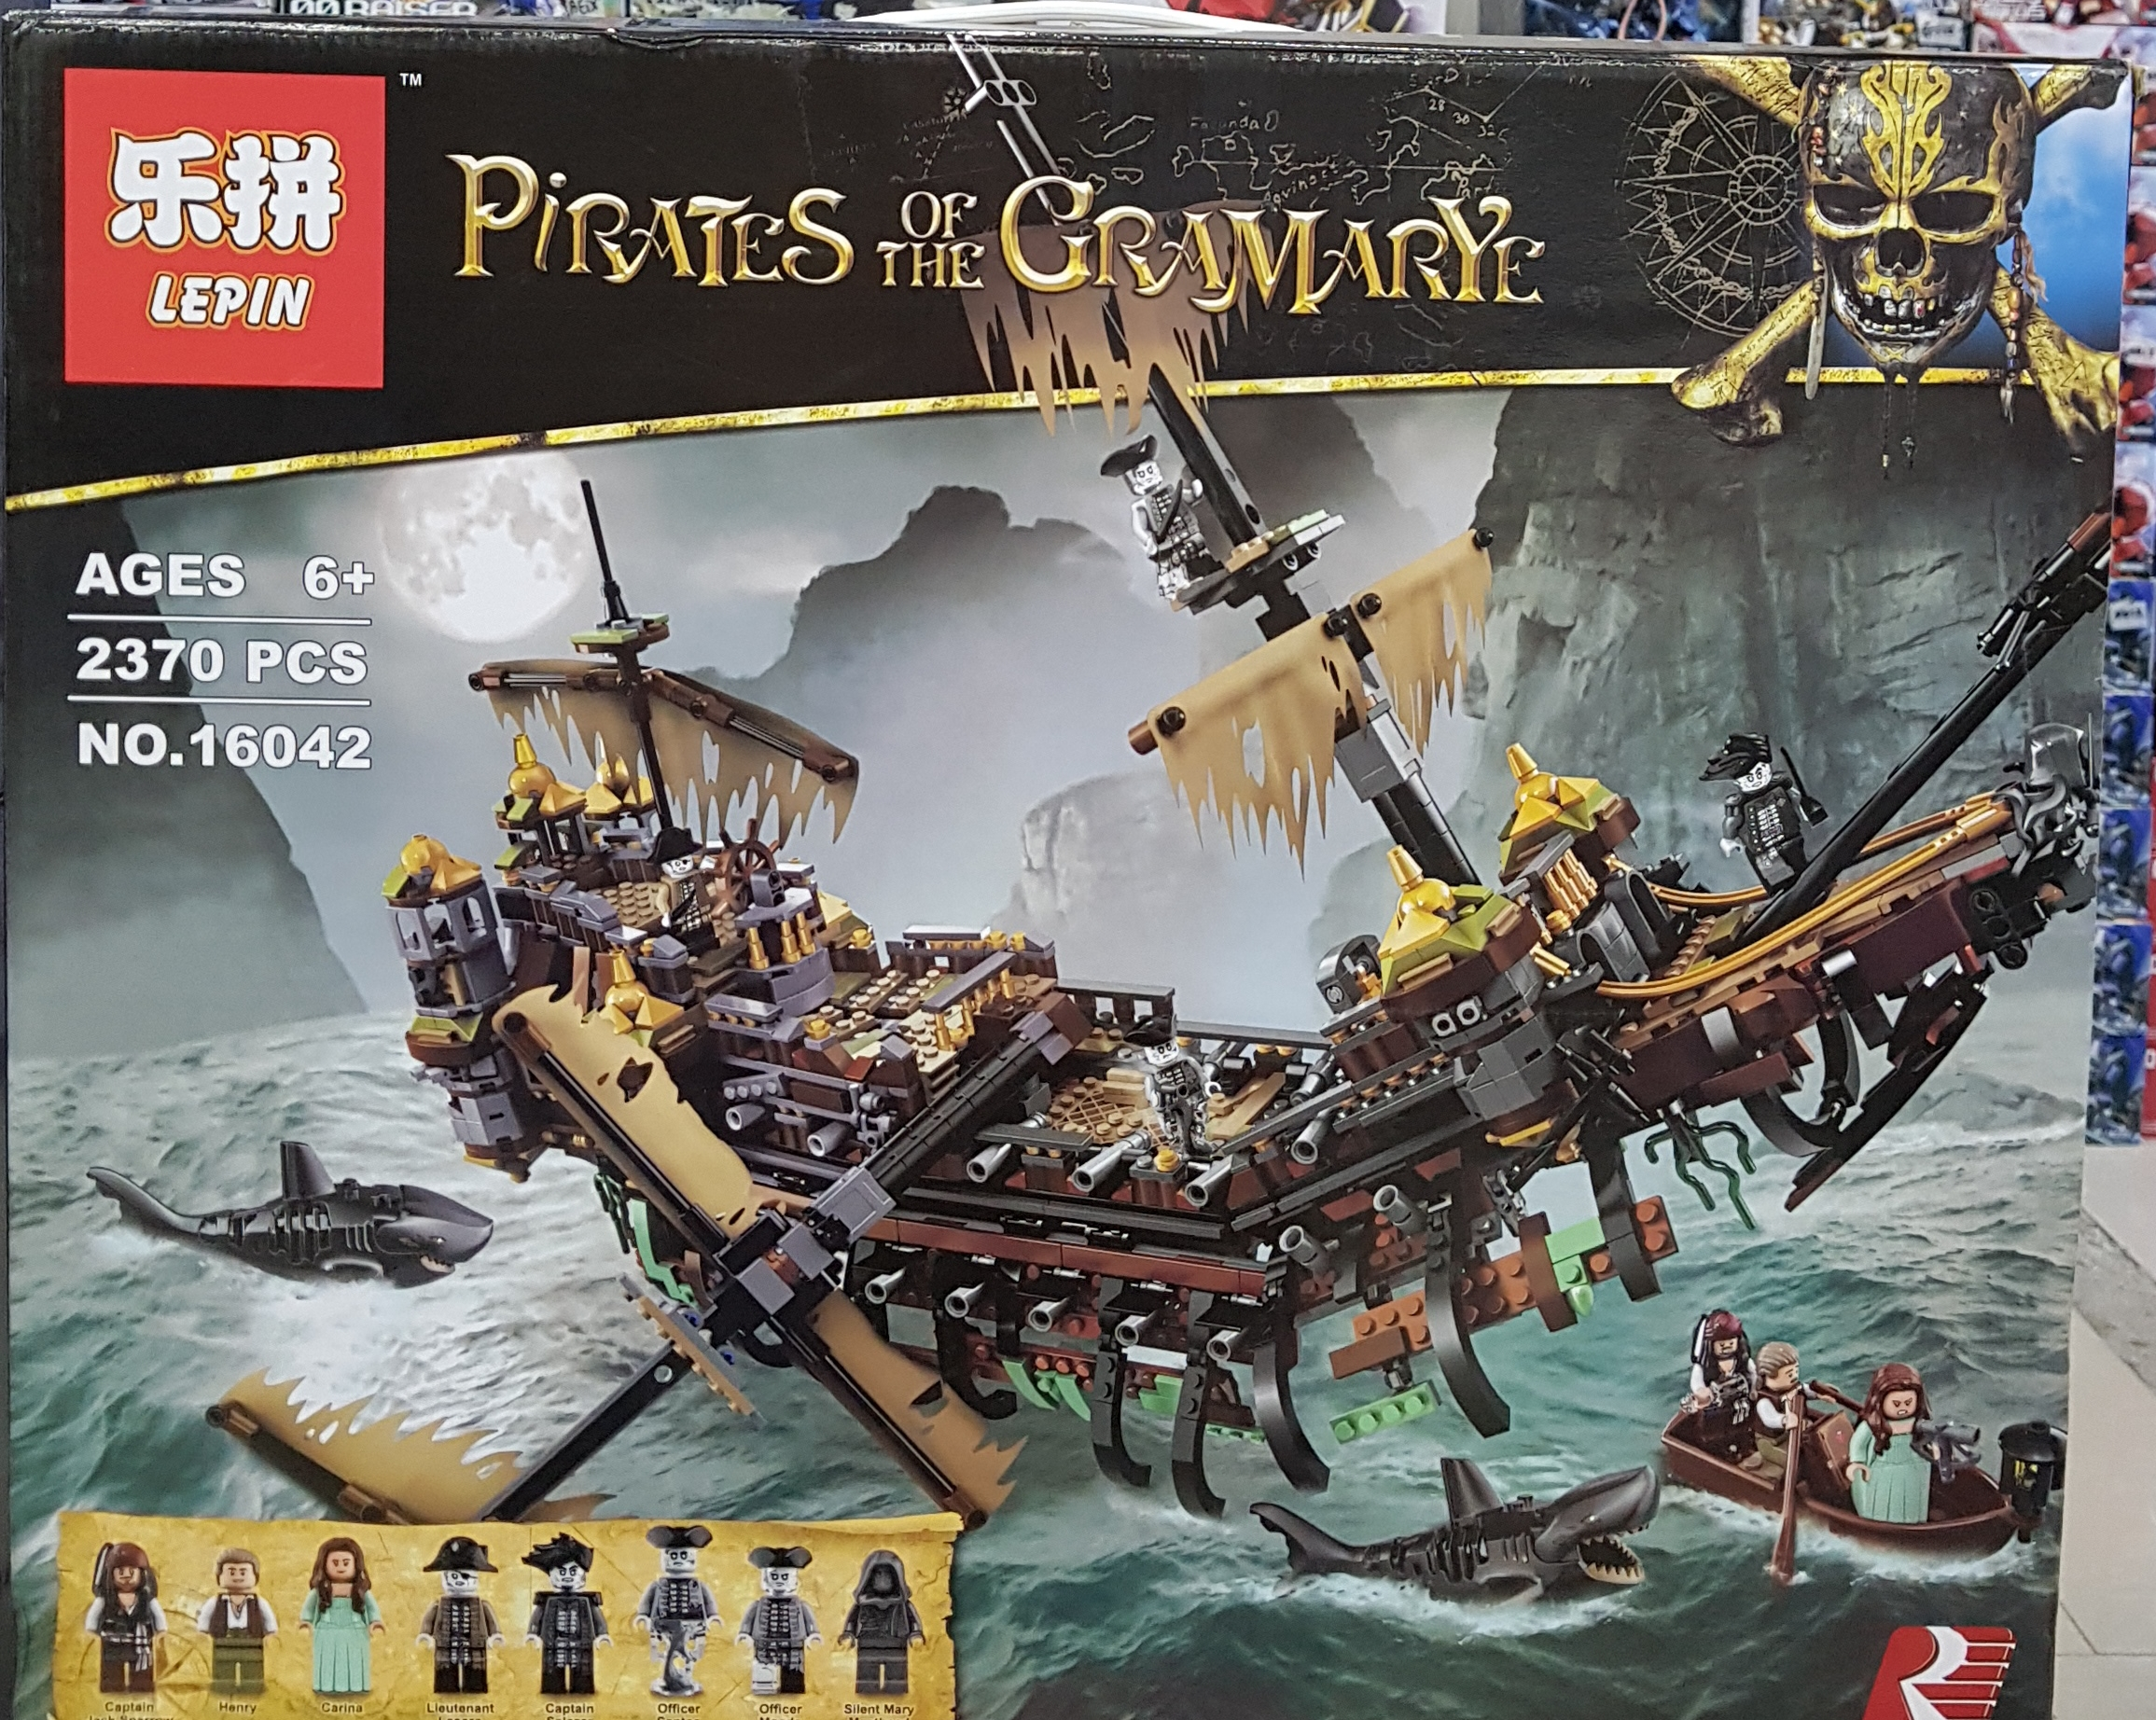 LEPIN PIRATES OF THE GRAMARYE 16042 [2370ชิ้น]